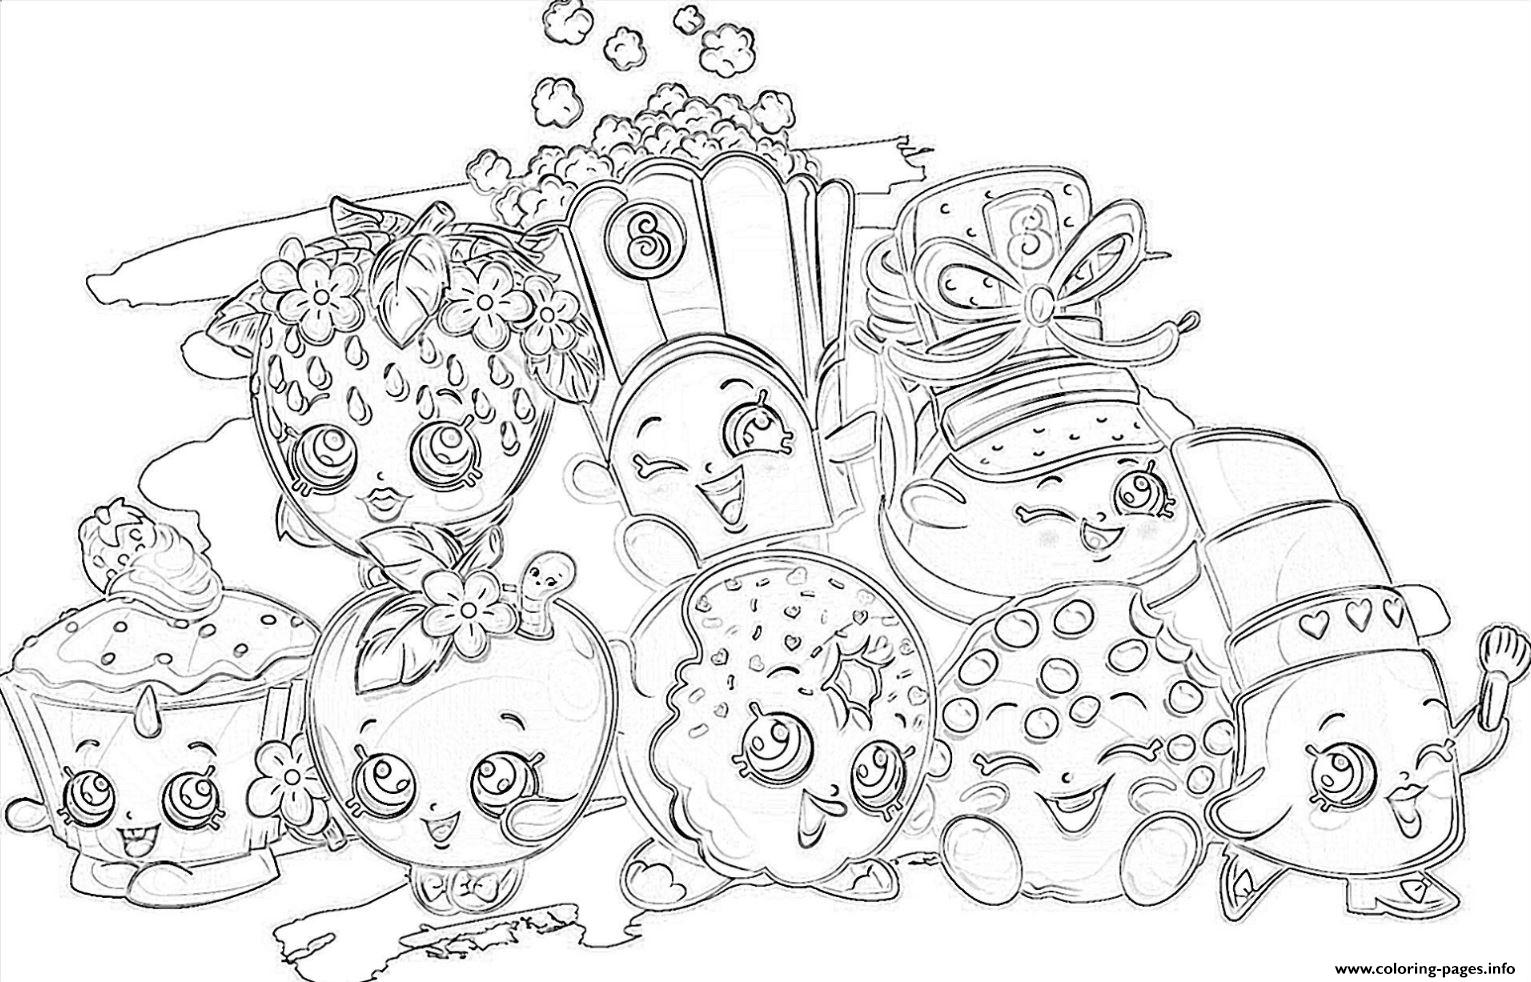 Shopkins All The Family coloring pages